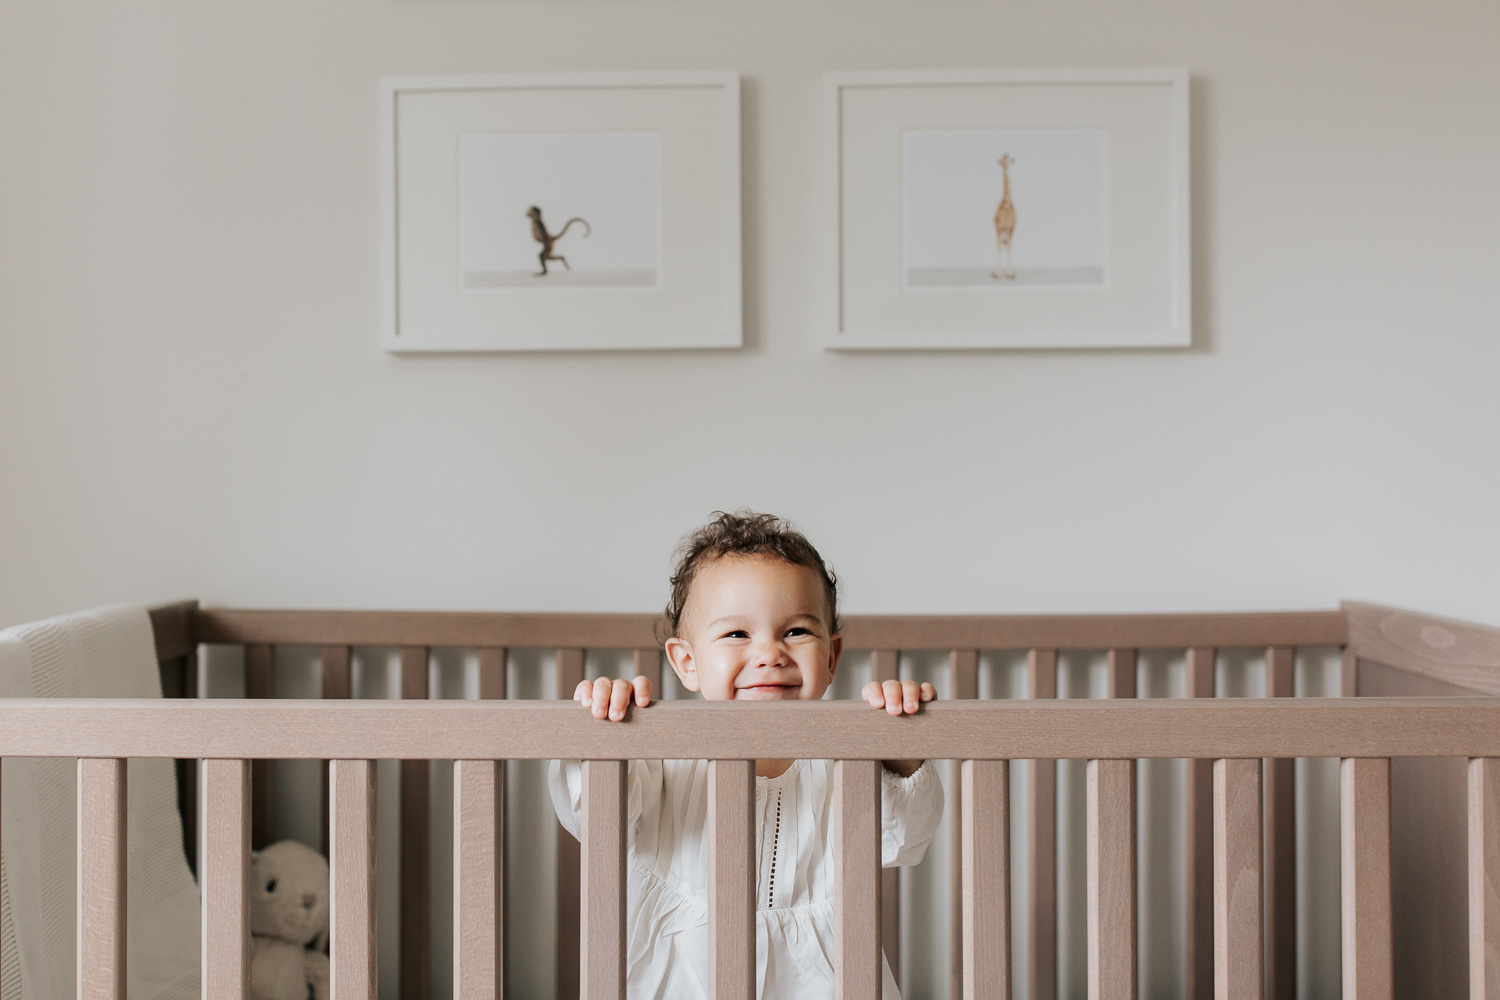 2 year old girl with dark curly hair and brown eyes in cream top and dark pants standing in crib looking up and smiling in neutral nursery with animal prints on wall -Markham Lifestyle Photography